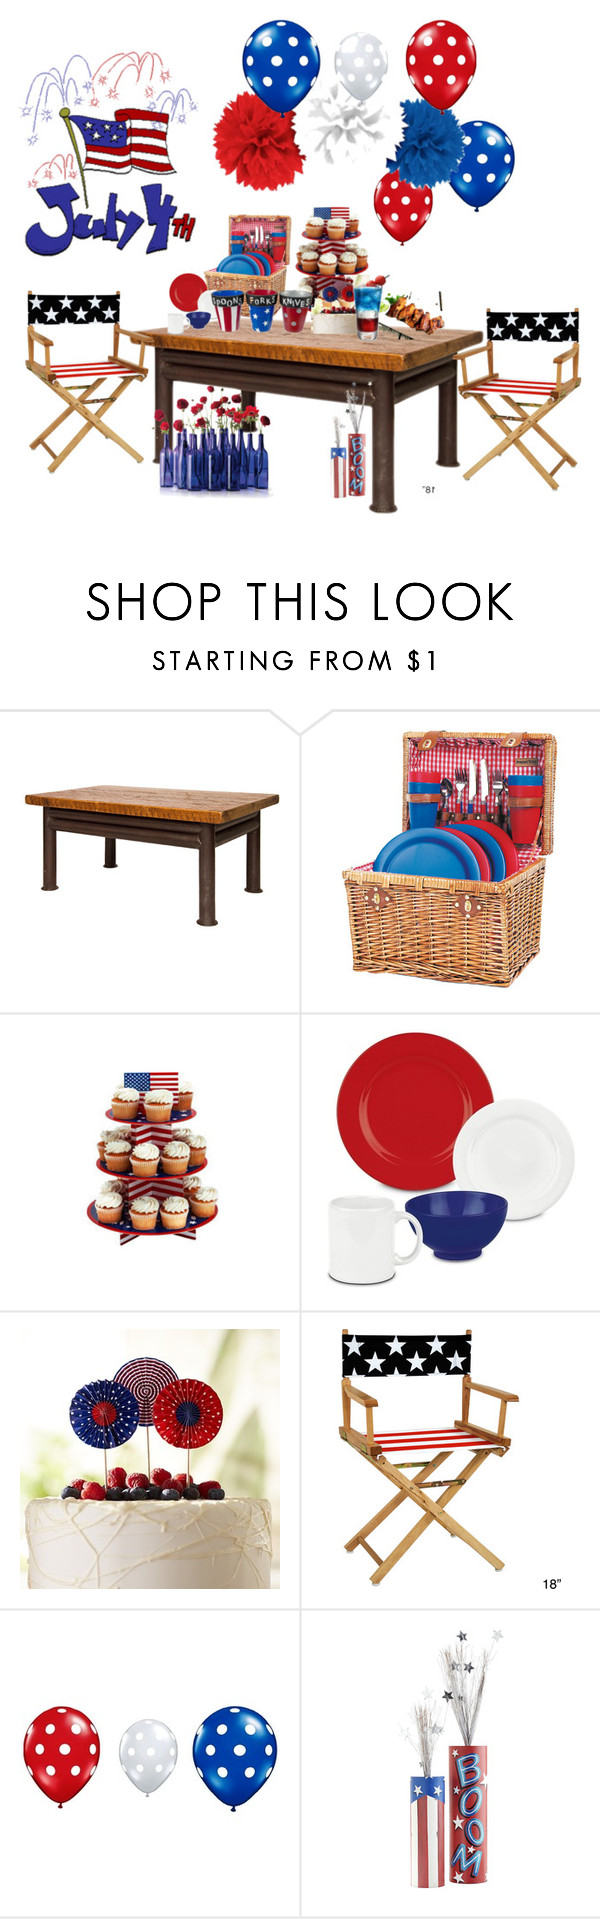 """Red, White, & Blue Tabletop"" by mommastephud ❤ liked on Polyvore featuring interior, interiors, interior design, home, home decor, interior decorating, Picnic Time, Waechtersbach and Pier 1 Imports"